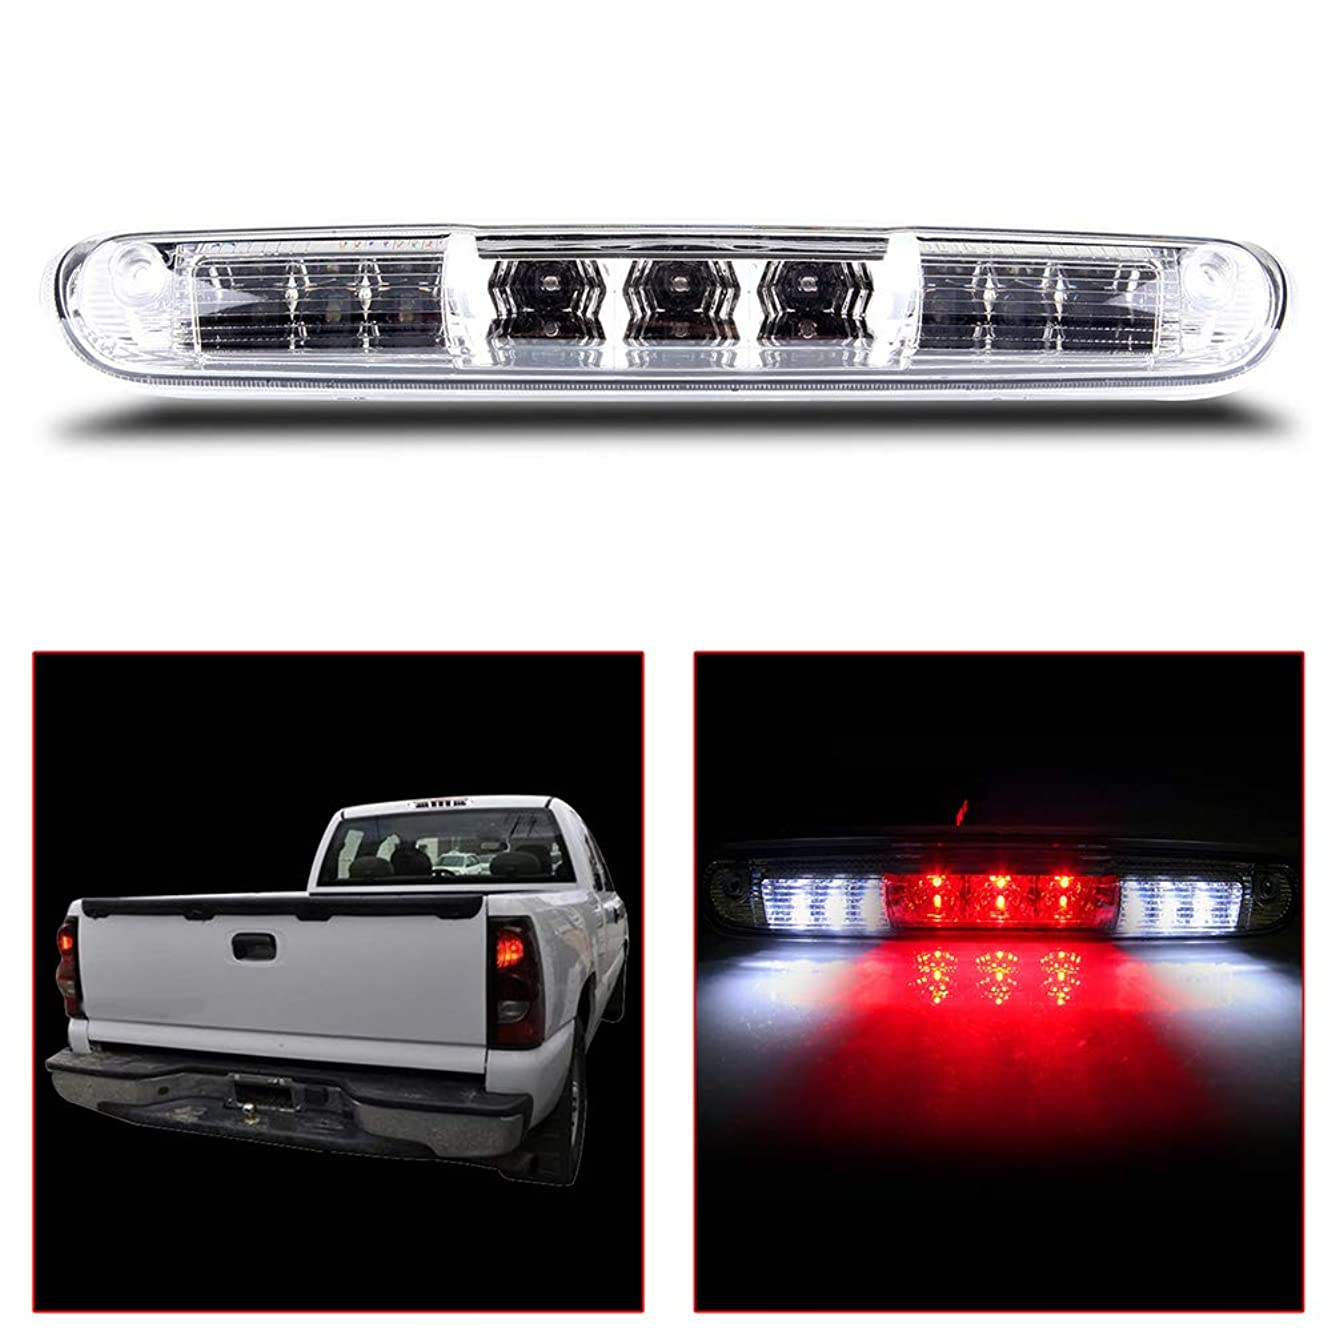 OCPTY Third 3rd High Mount Brake Light Lamp Replacement Rear Roof Light Replacement fit for 2007-2013 Chevy Silverado/GMC Sierra